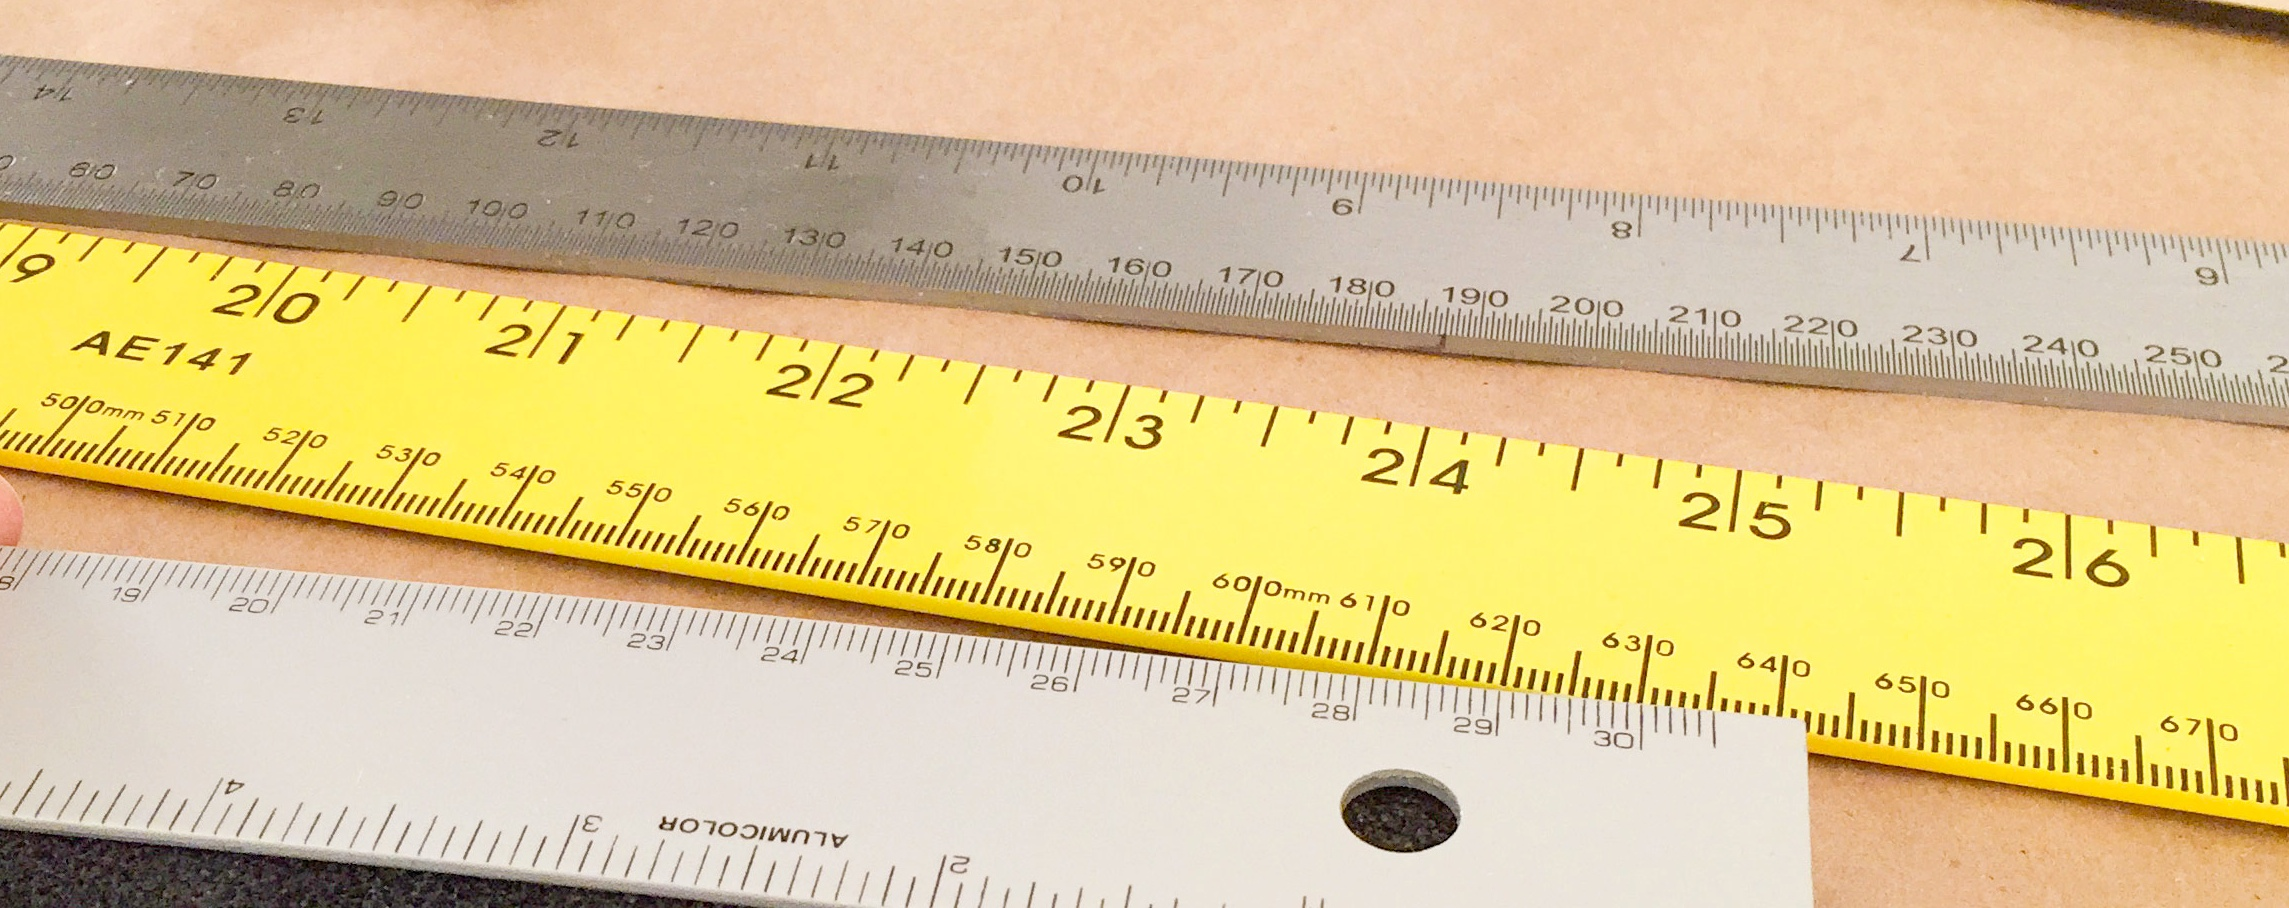 Intro to measuring tools / Boing Boing